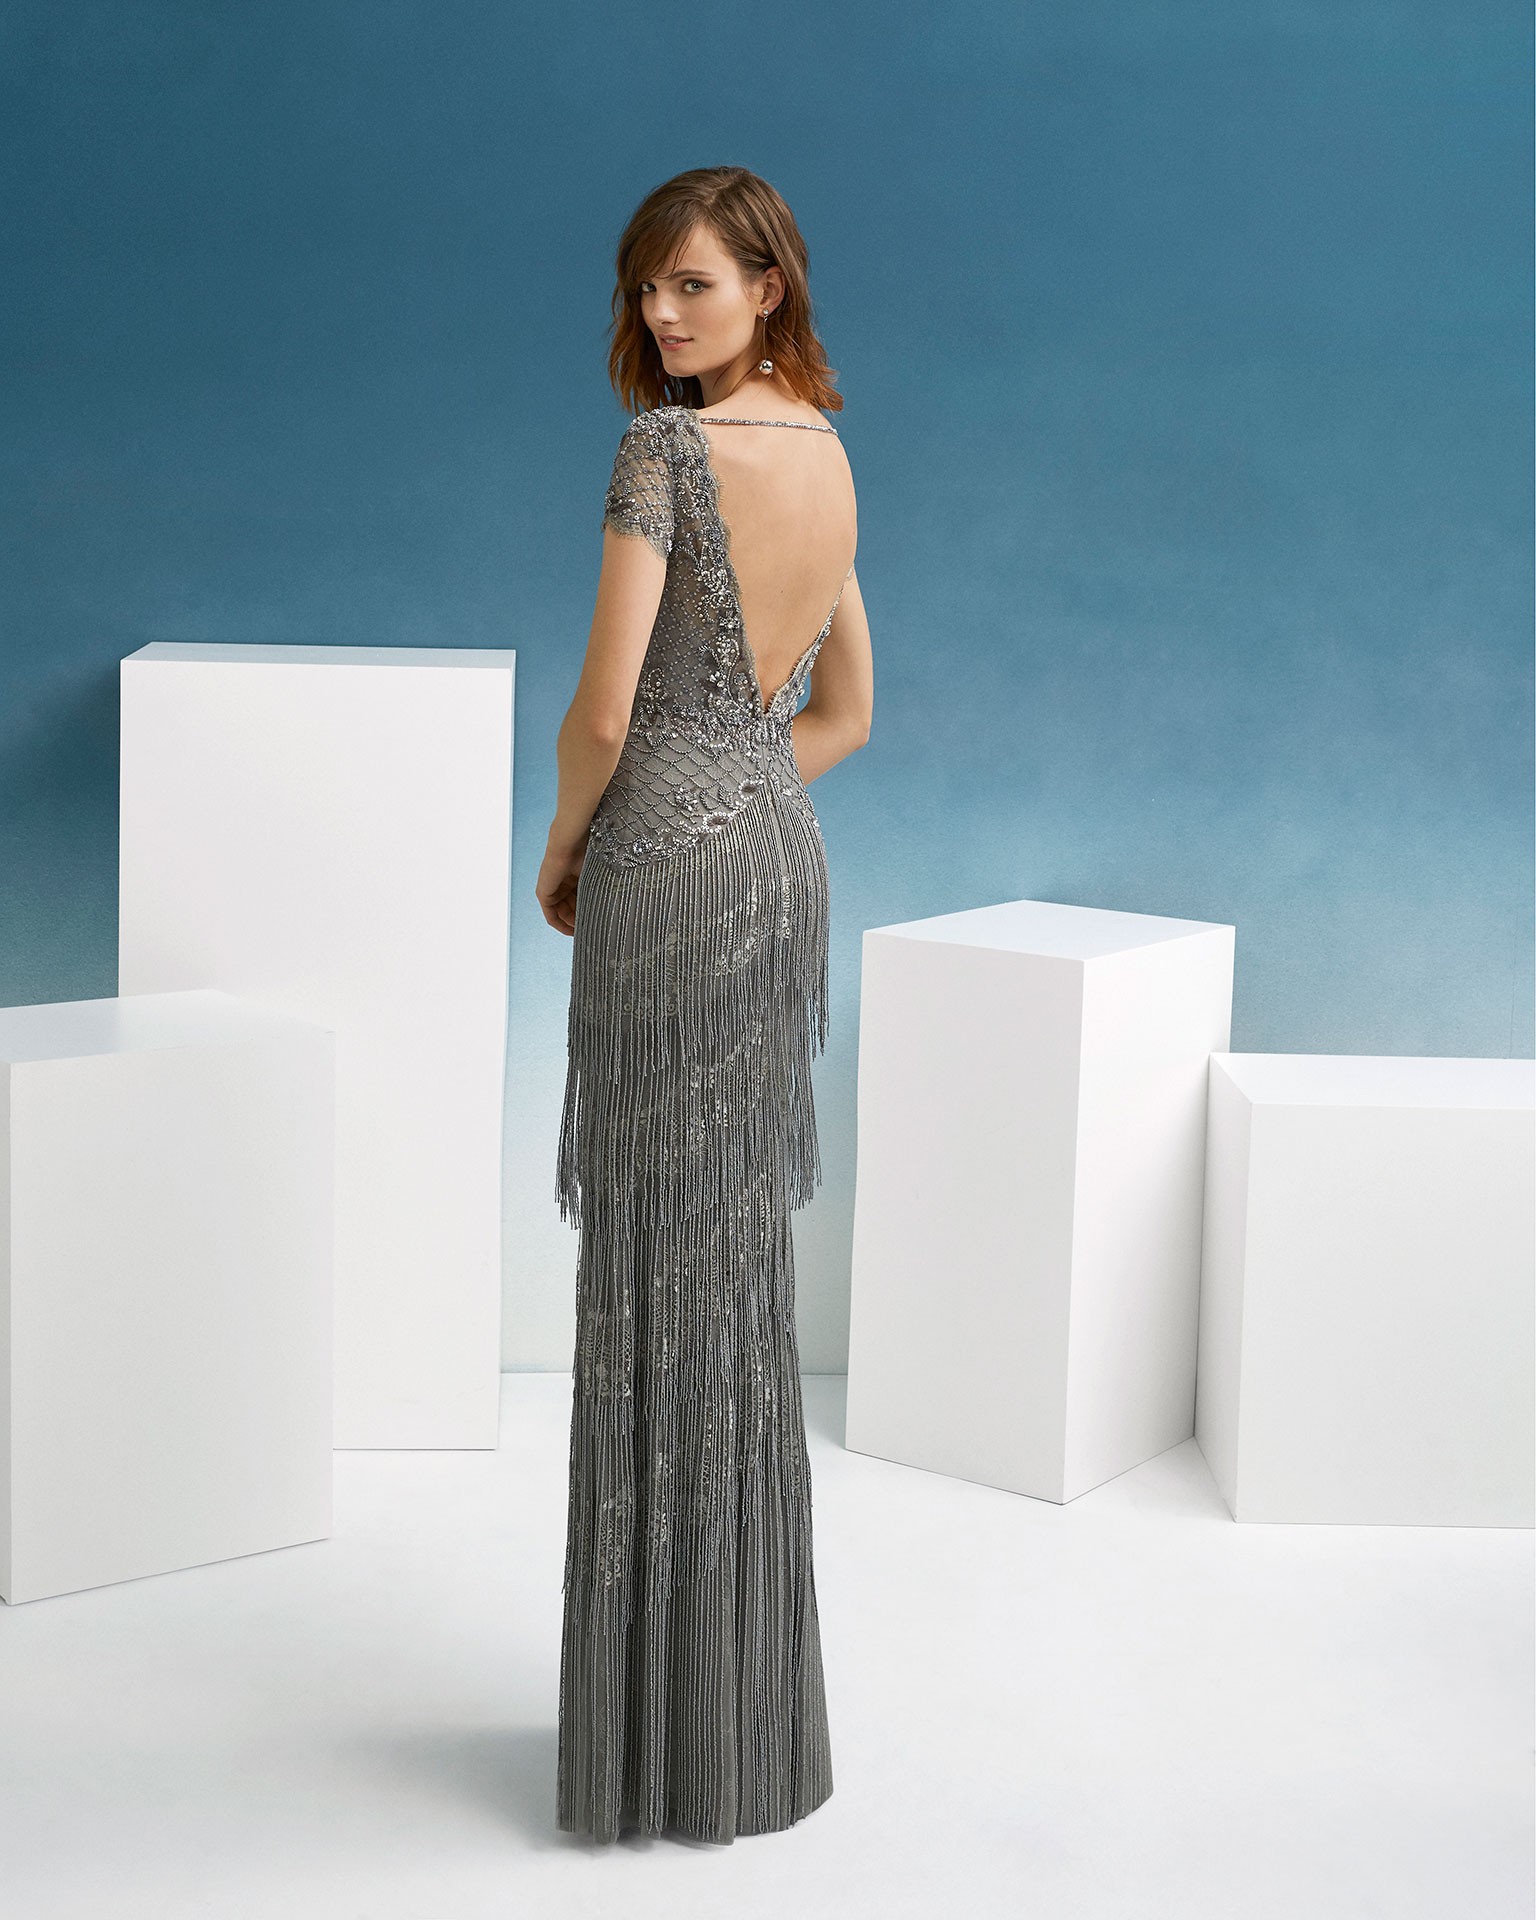 Beaded cocktail dress. With V-neckline, long sleeves and beaded fringed skirt. 2019 FIESTA AIRE BARCELONA Collection.